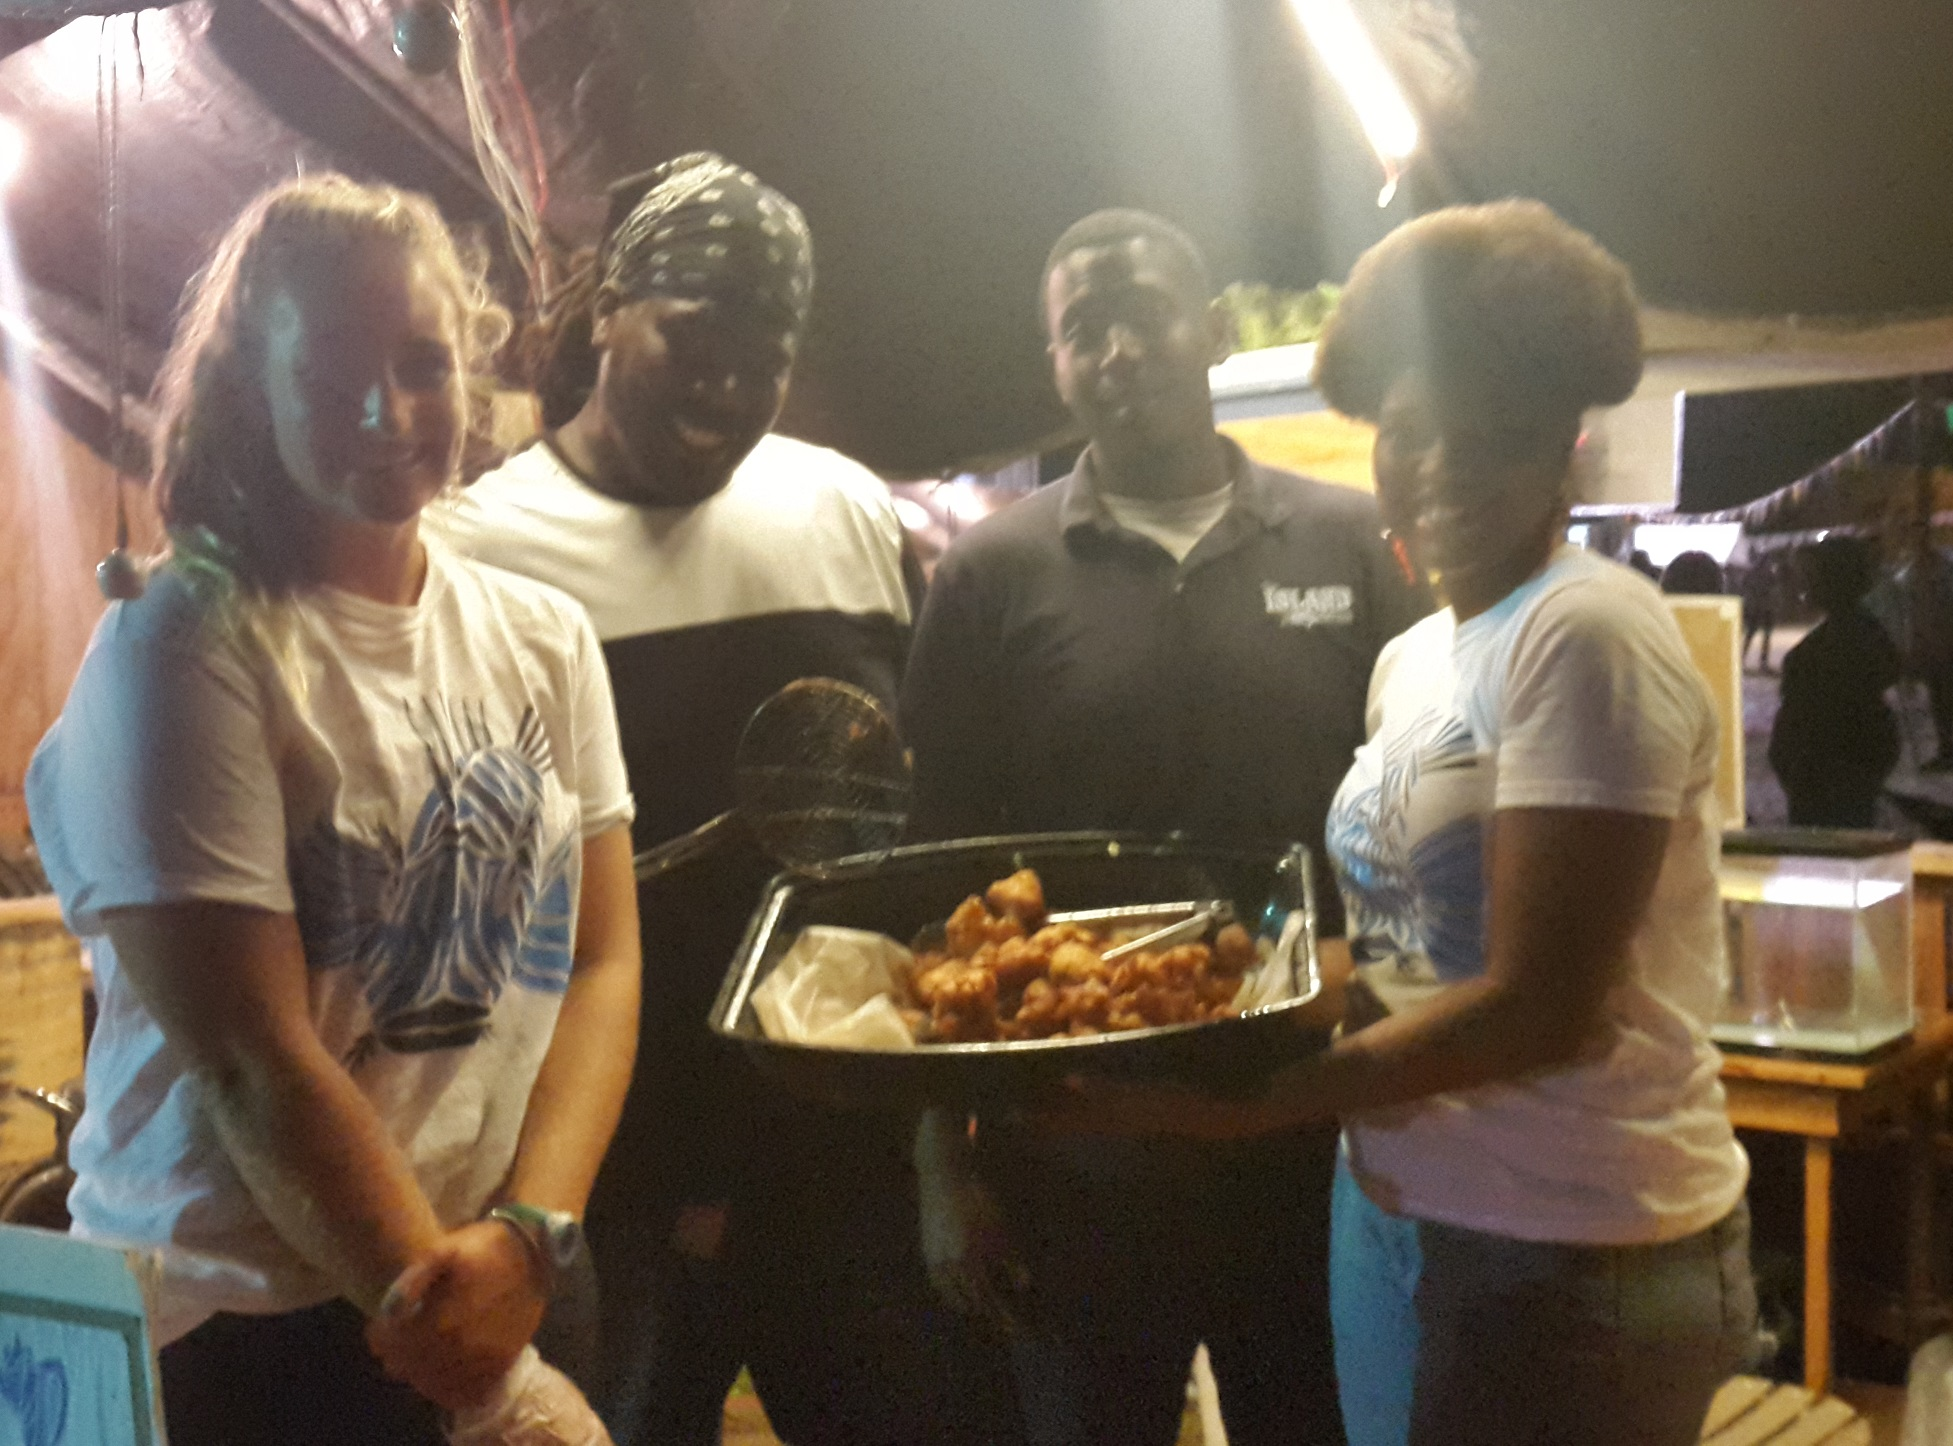 The CEI Sustainable Fisheries team serving up lionfish fritters